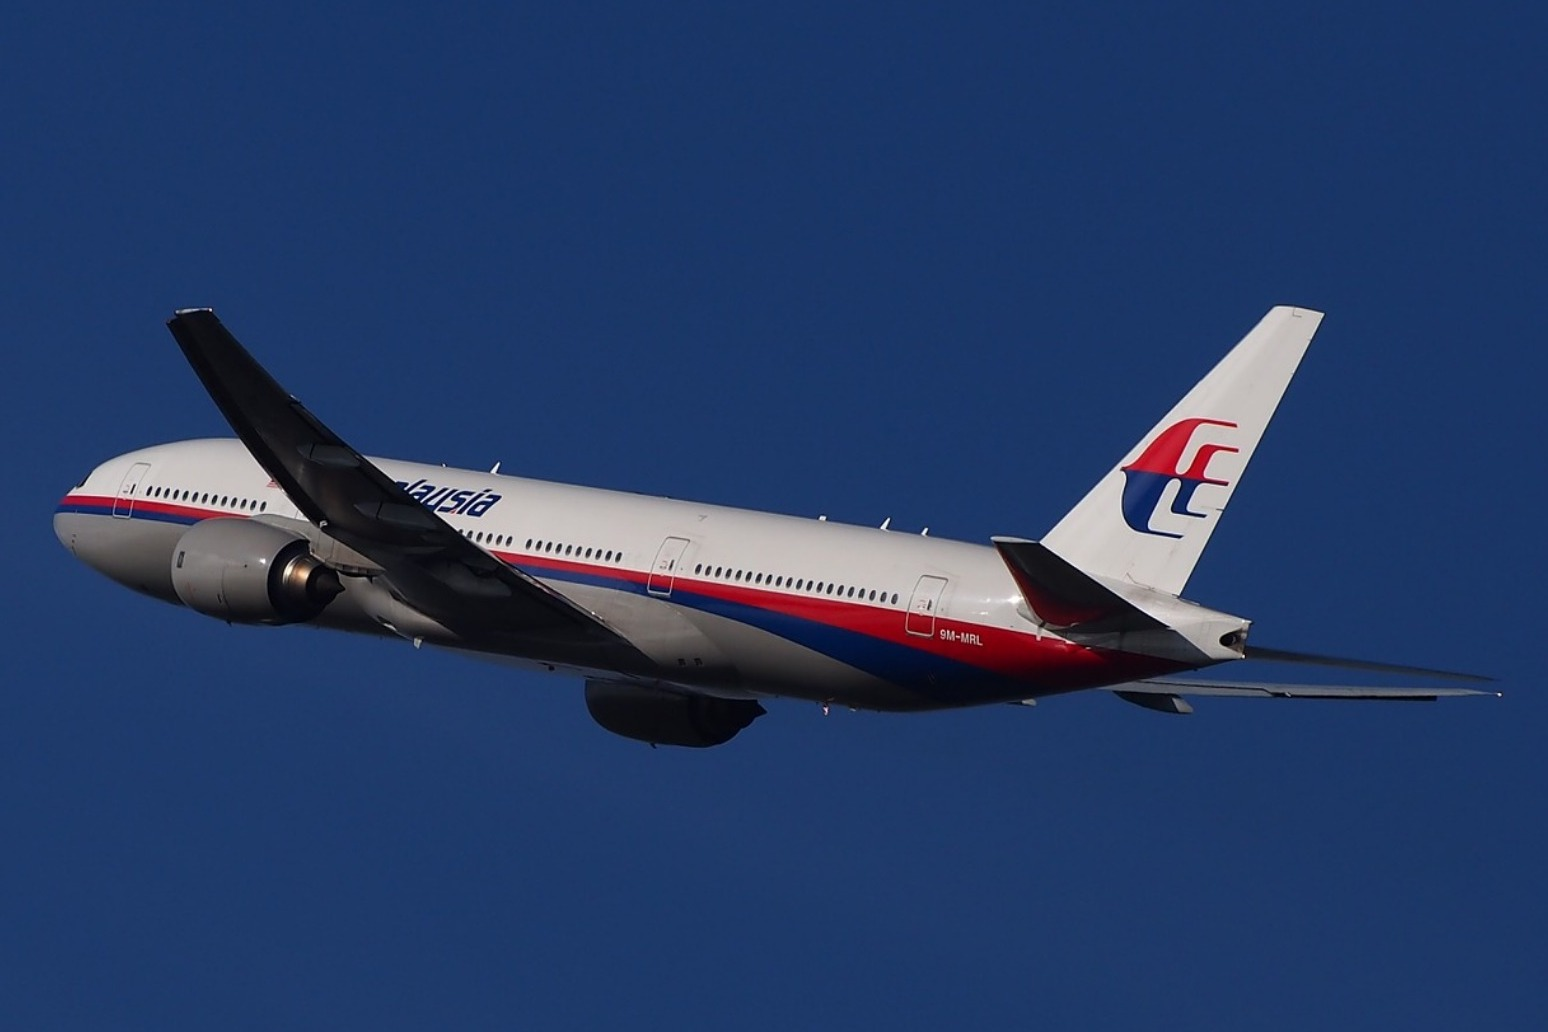 Russia denies Dutch and Australia claims over MH17